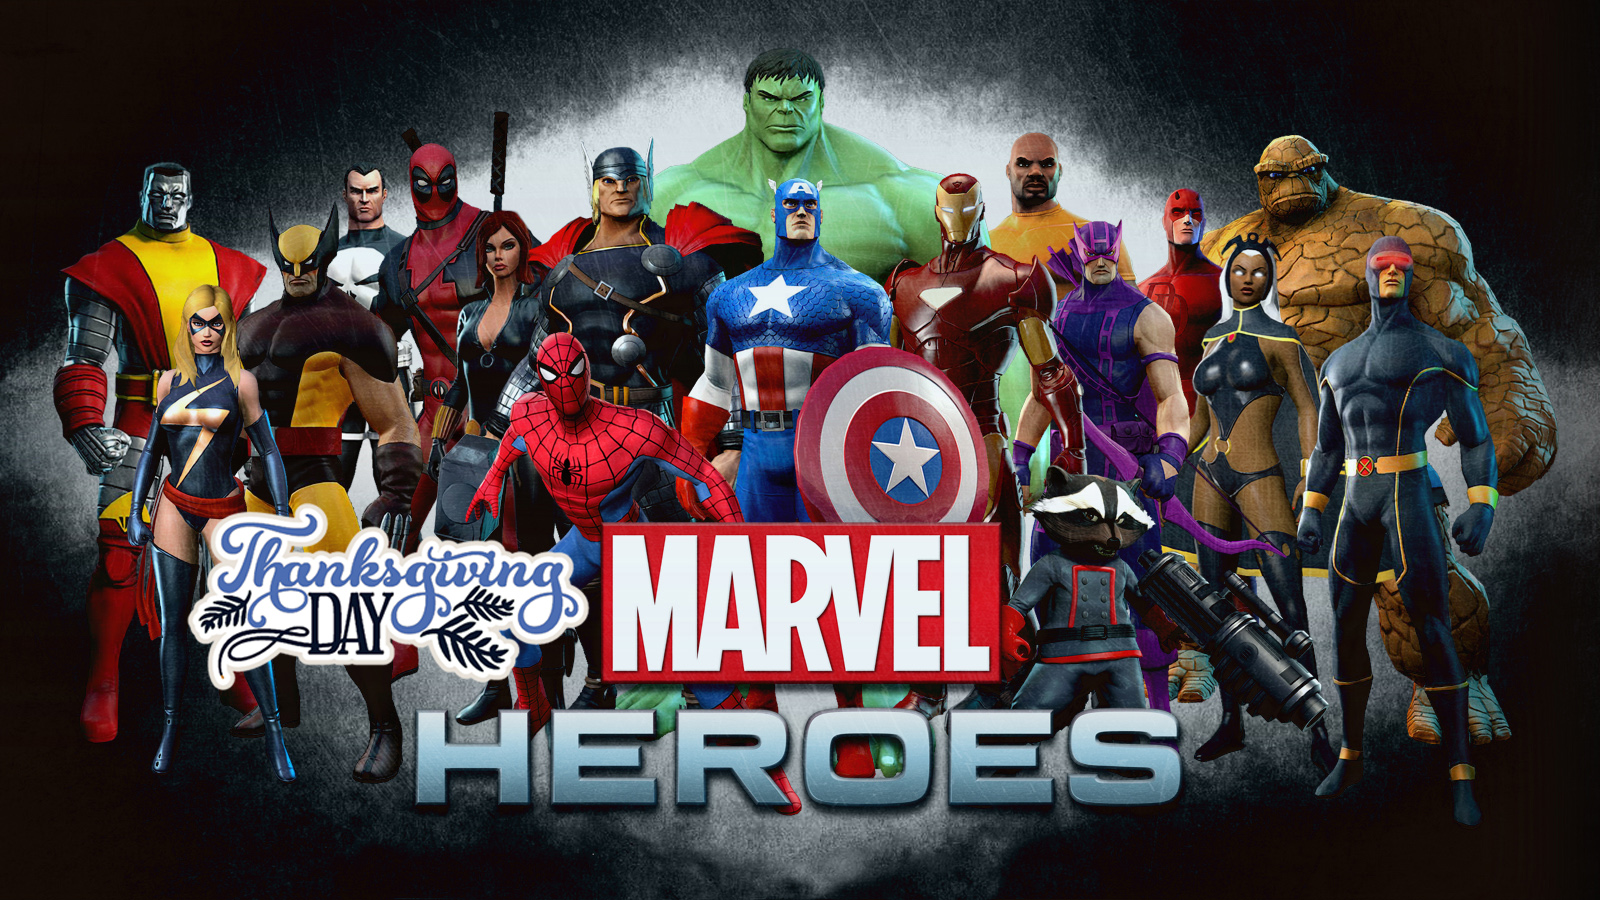 marvel heroes wishing you happy thanksgiving day hd wallpaper